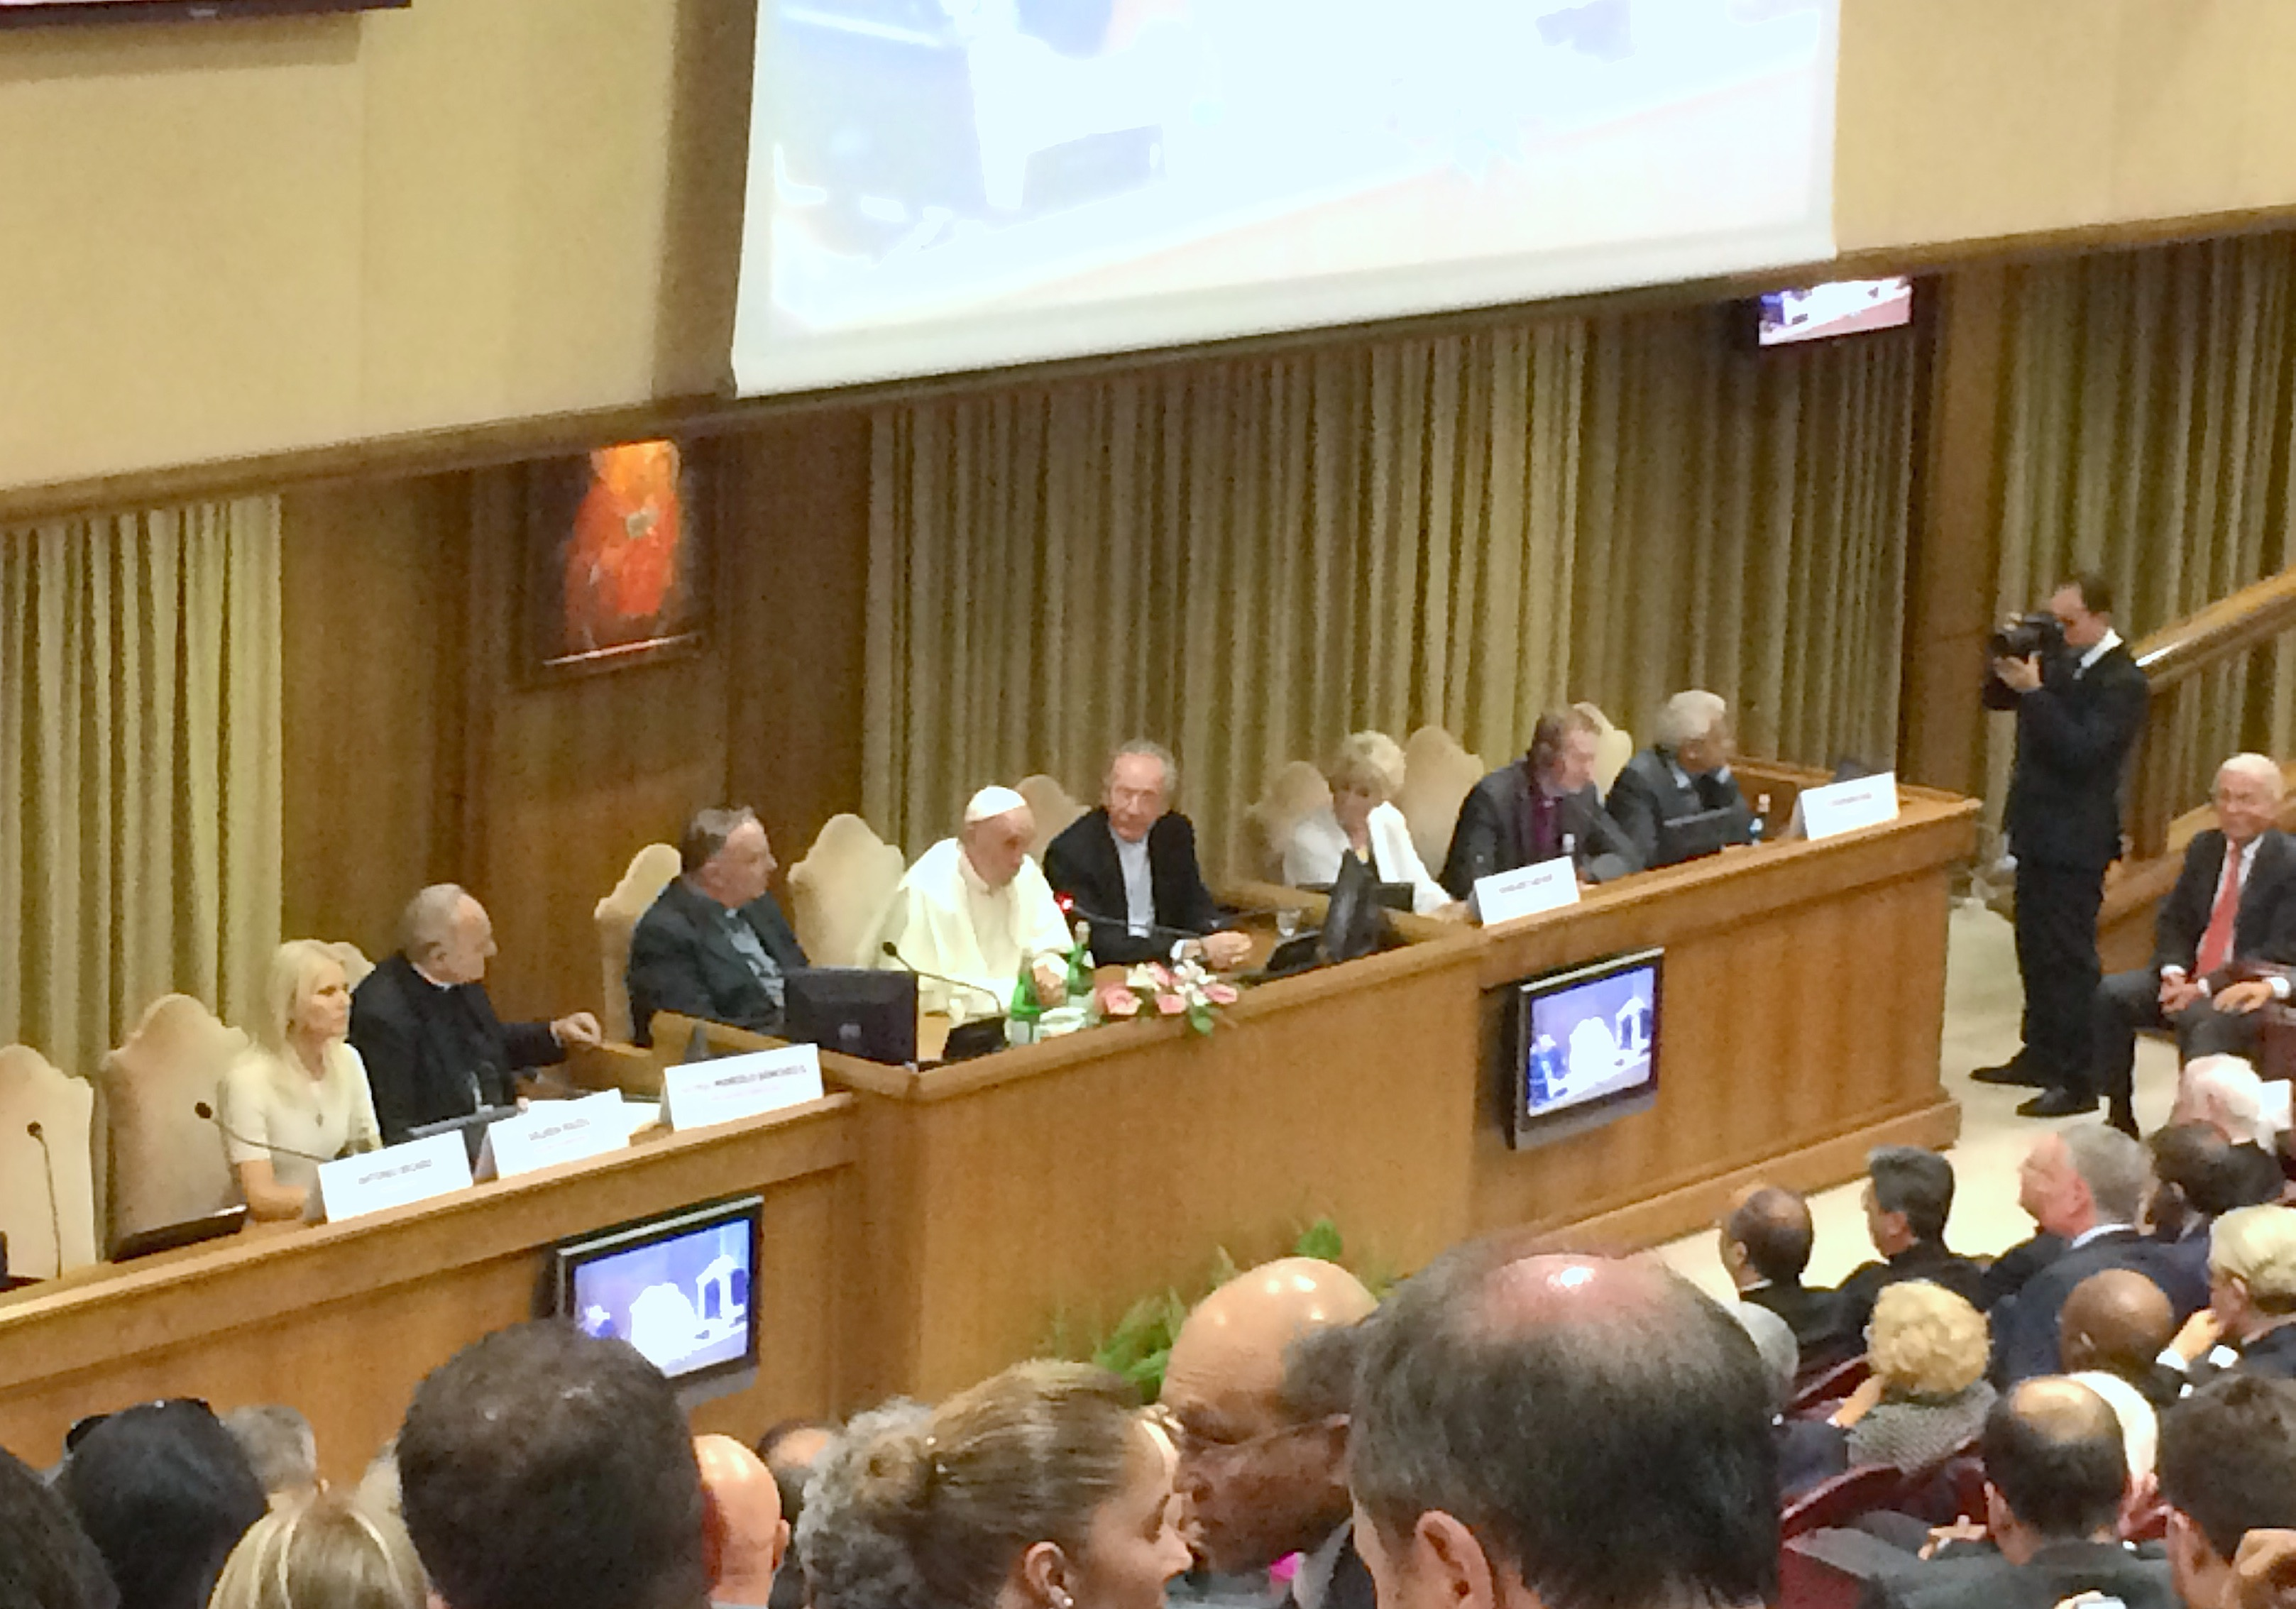 Summit of the mayors of the world in the Vatican